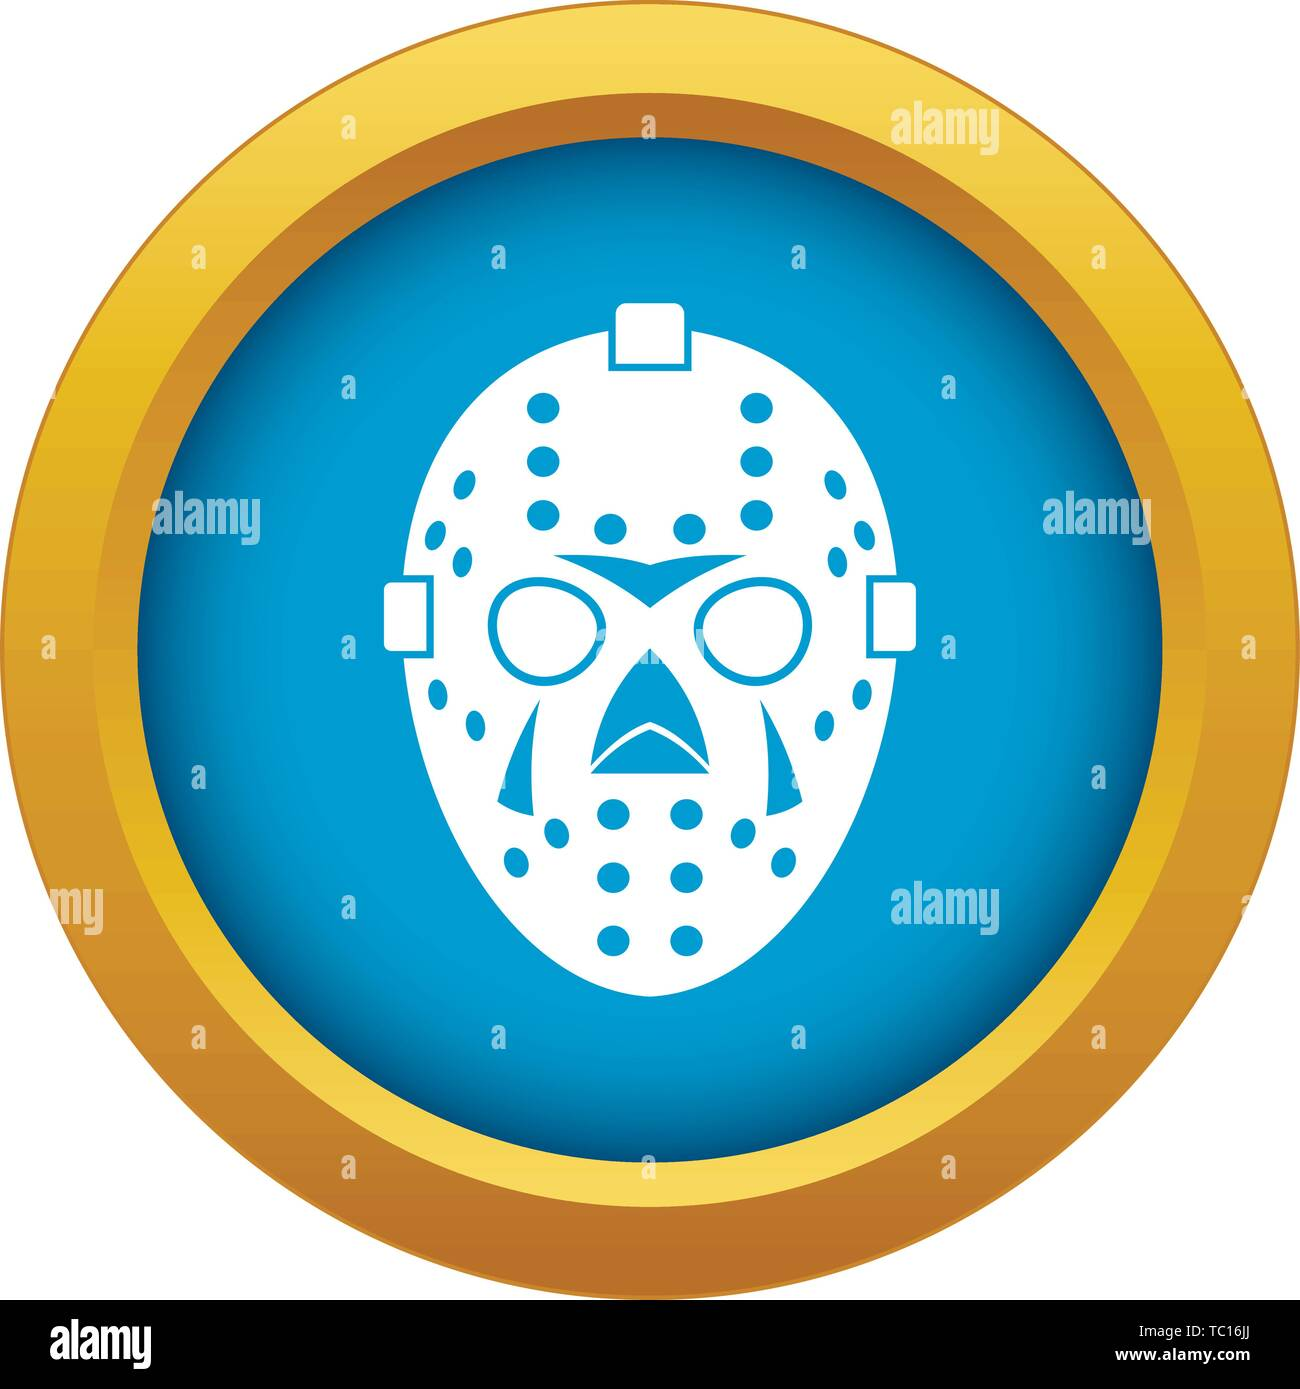 Goalkeeper mask icon blue vector isolated - Stock Image